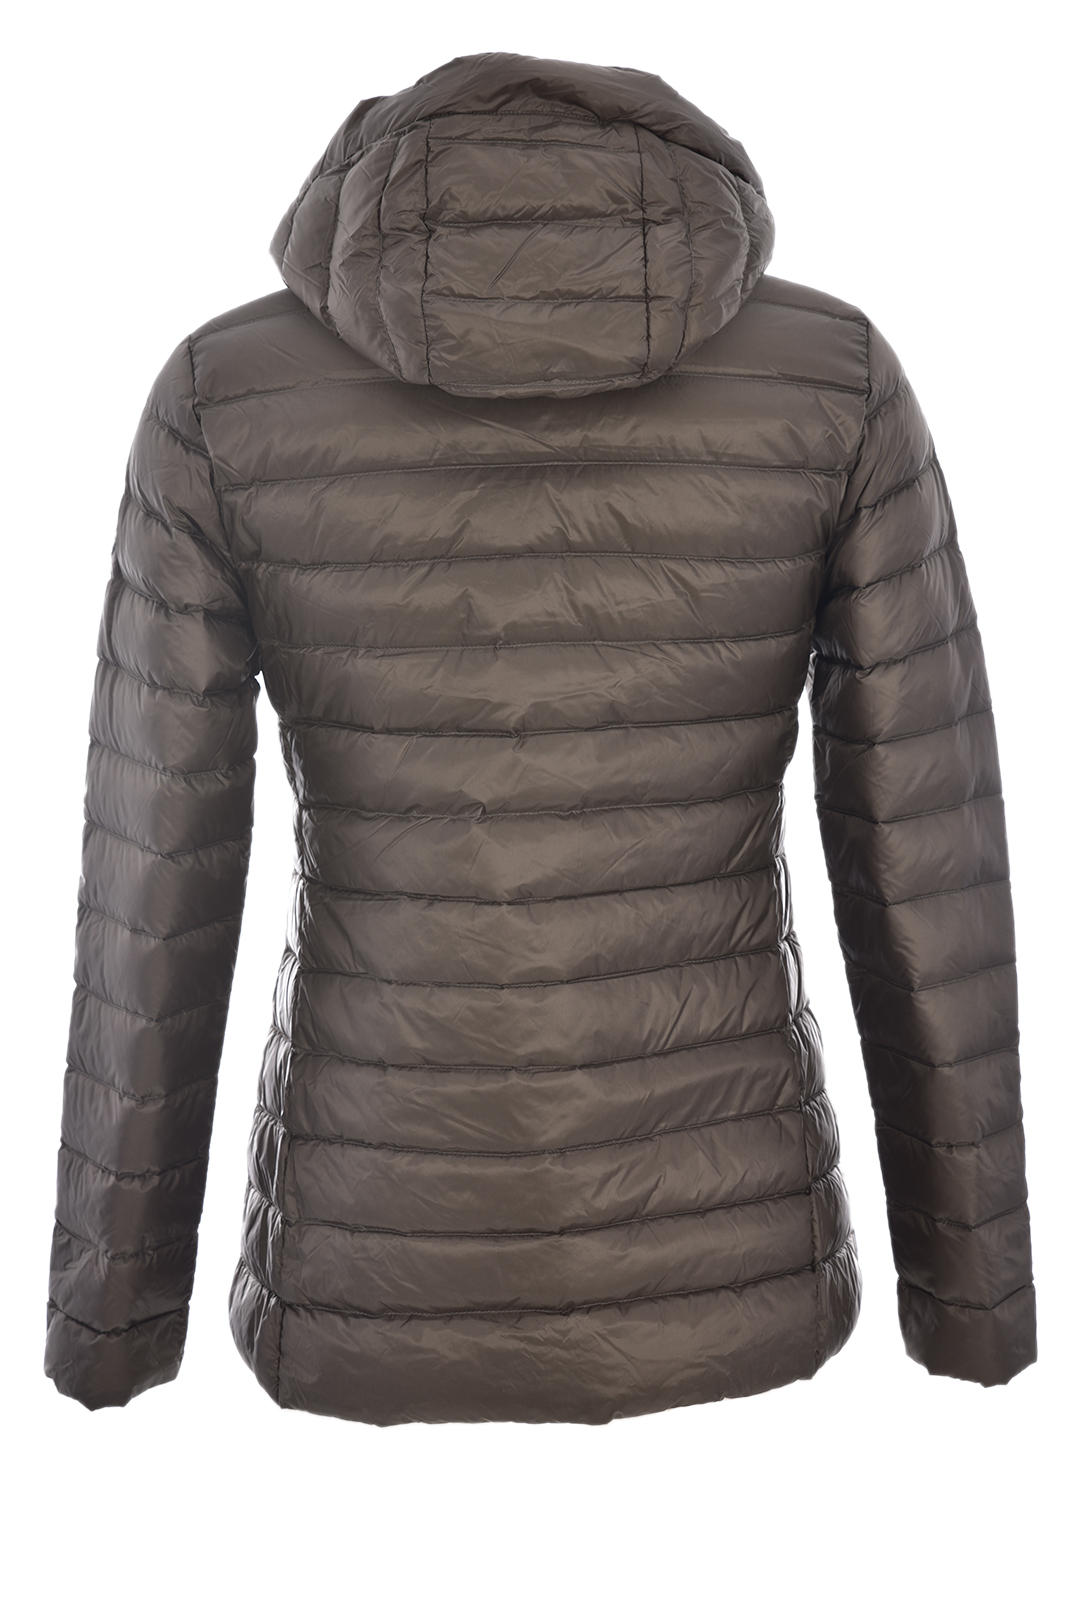 Blouson  Just over the top CLAUDIE 808 TAUPE